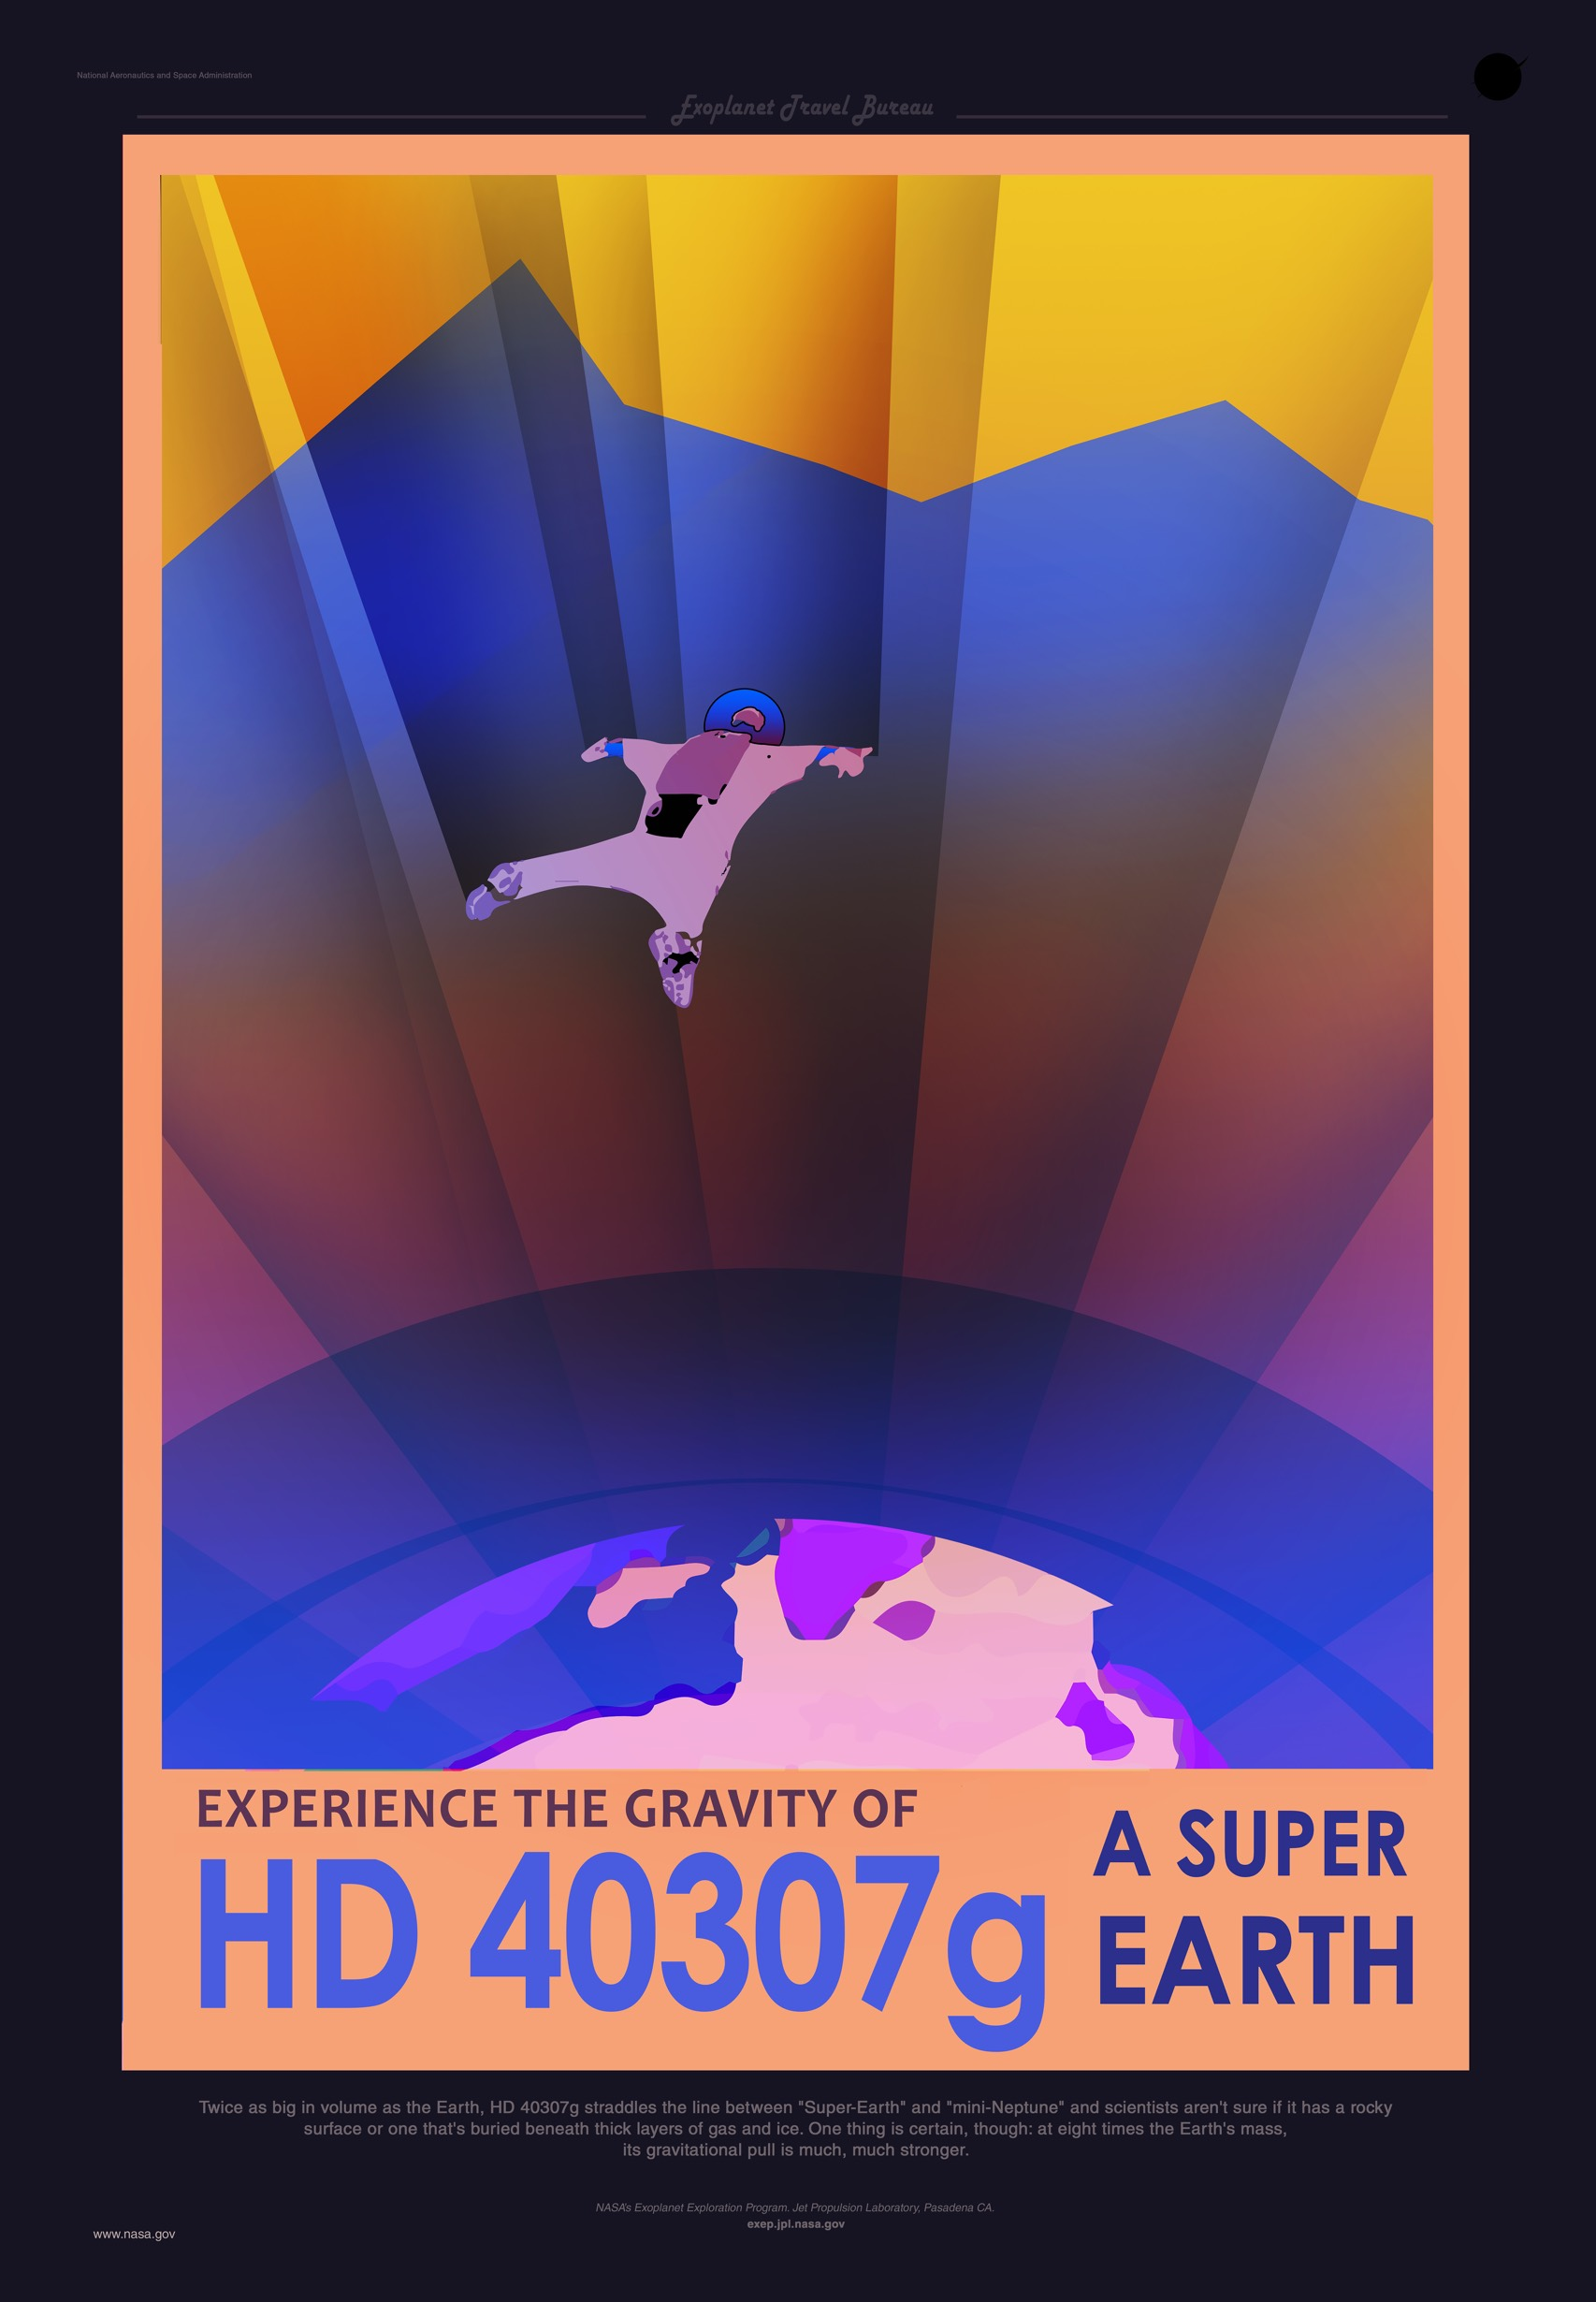 nasa u2019s travel posters promote newly discovered planets